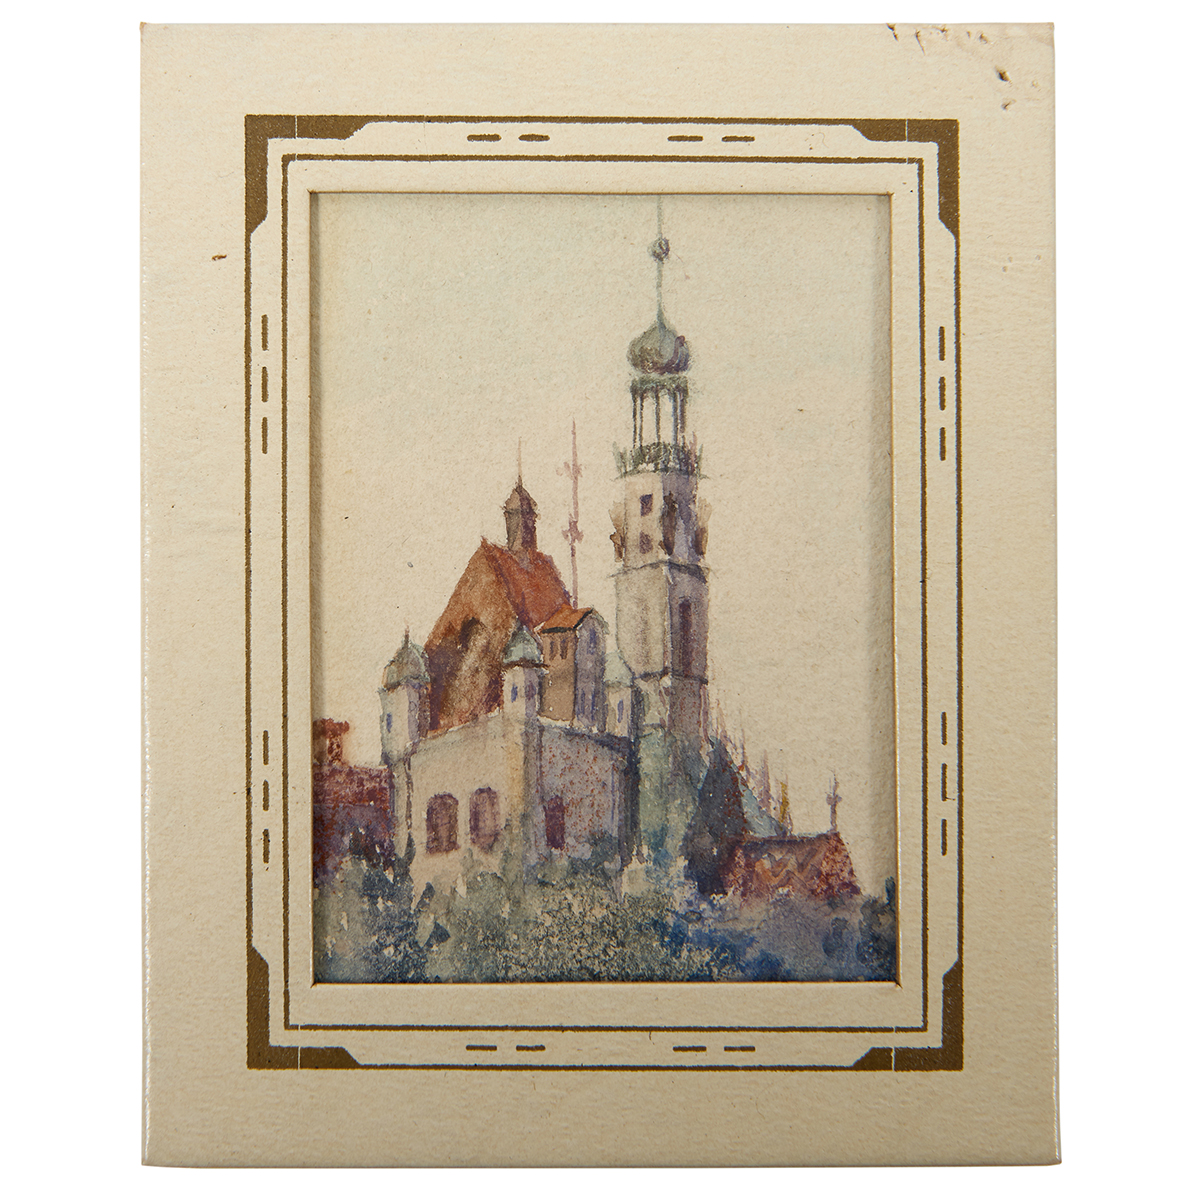 "Alma Moessner, (American, 1869-1922), A group of four works from the Columbian Exposition, watercolors, largest 14"" x 19 3/4"""